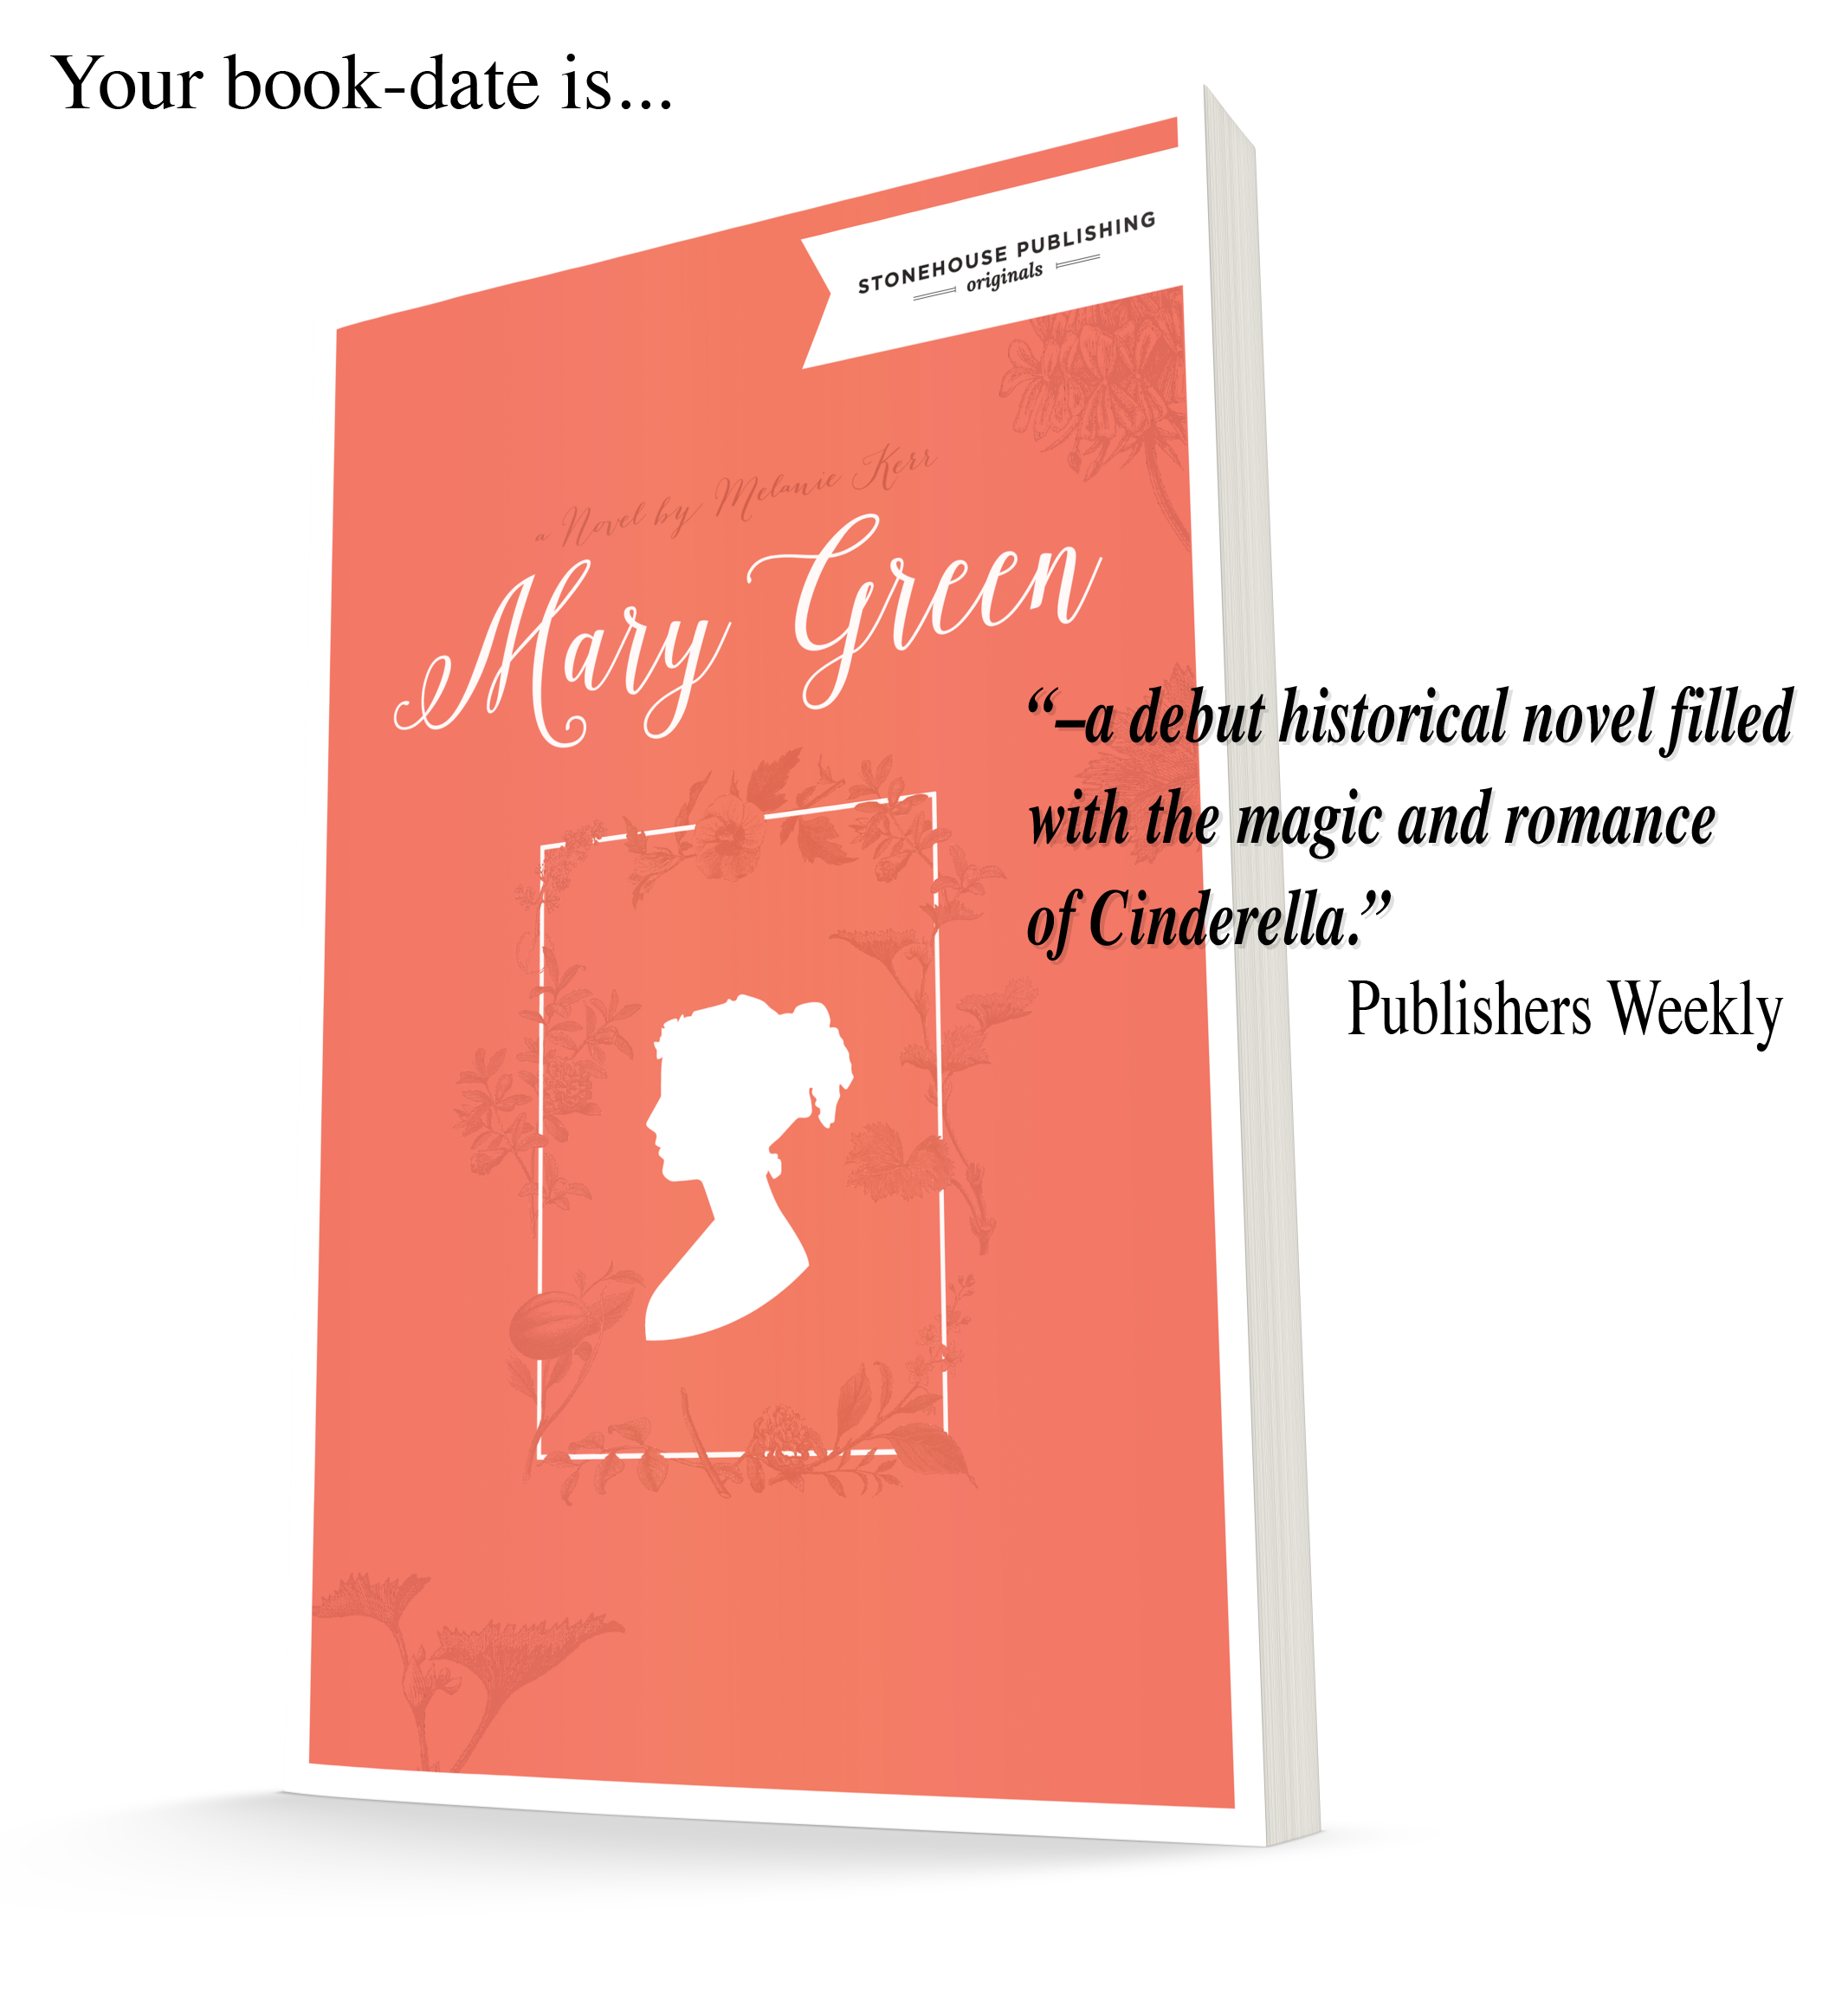 Your book-date is; Mary Green